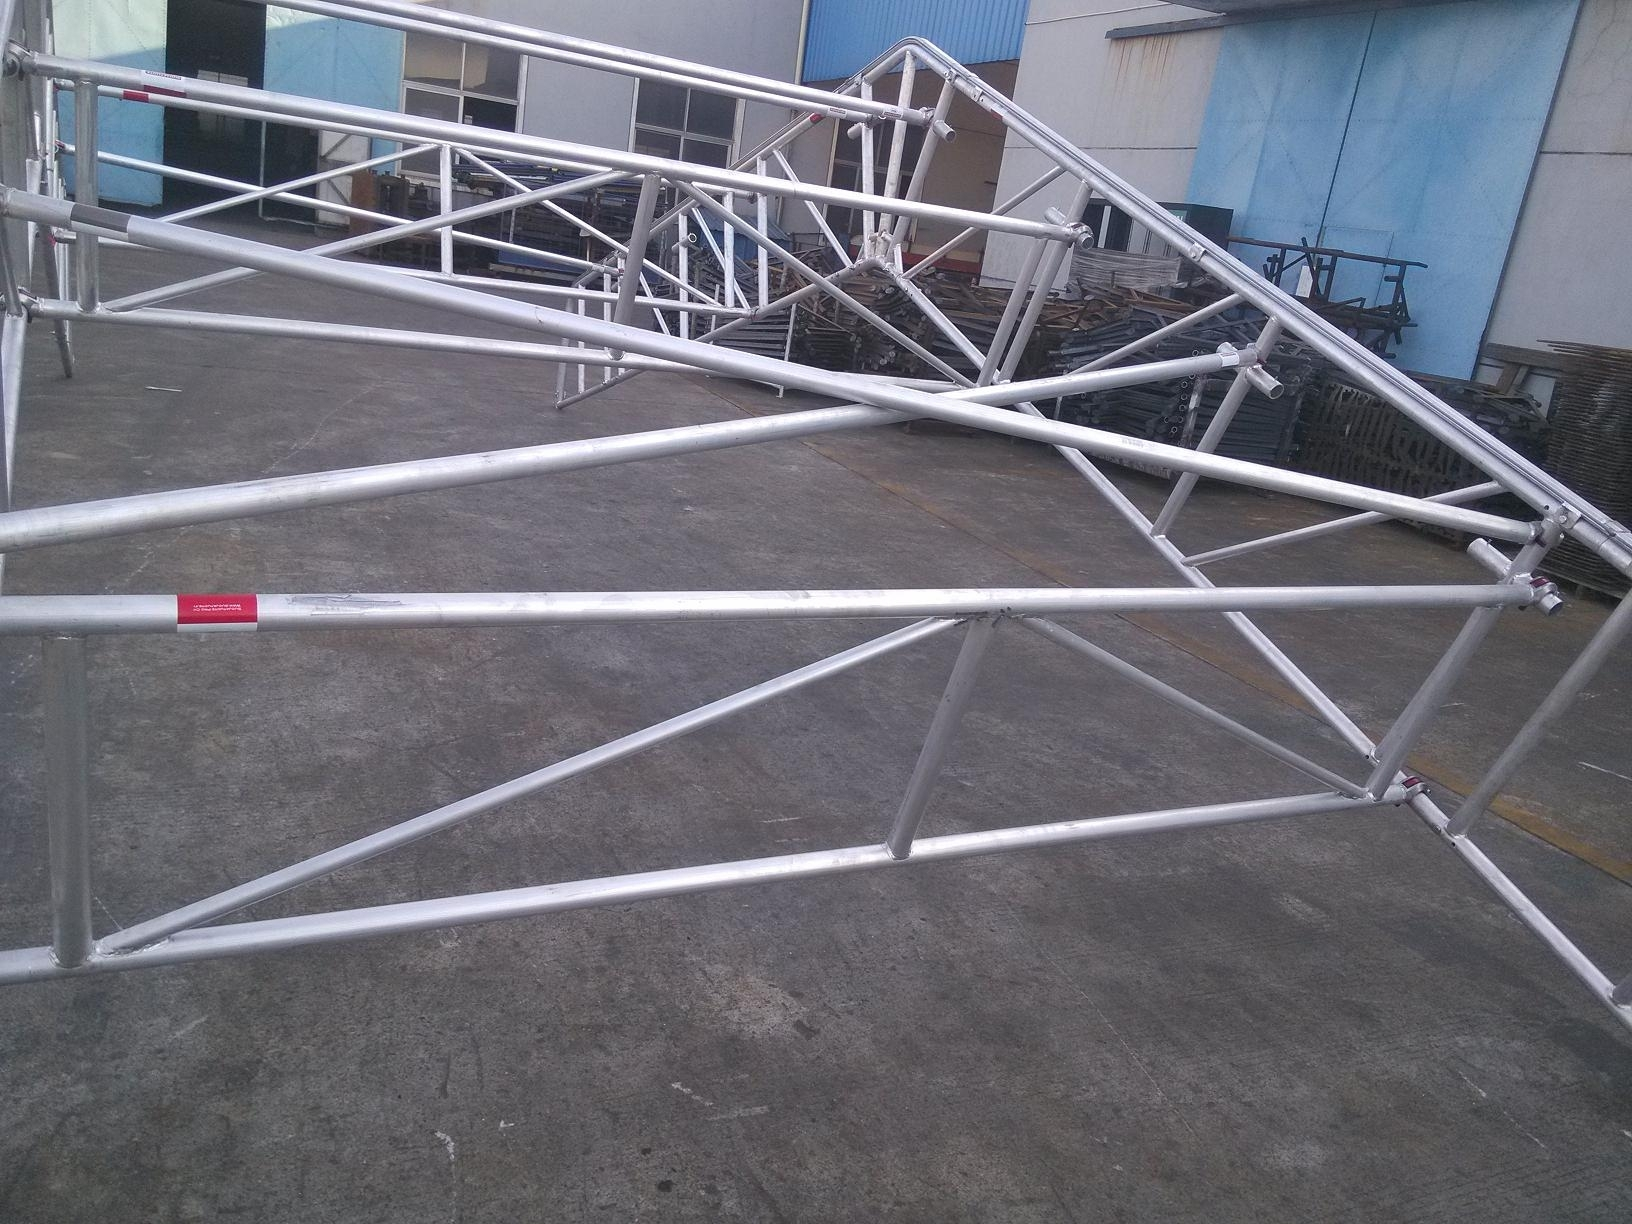 made of aluminium tube for weather protection, easy to erect and dismantle contact: Tel: +86 731 85512758 yephen@fenghos